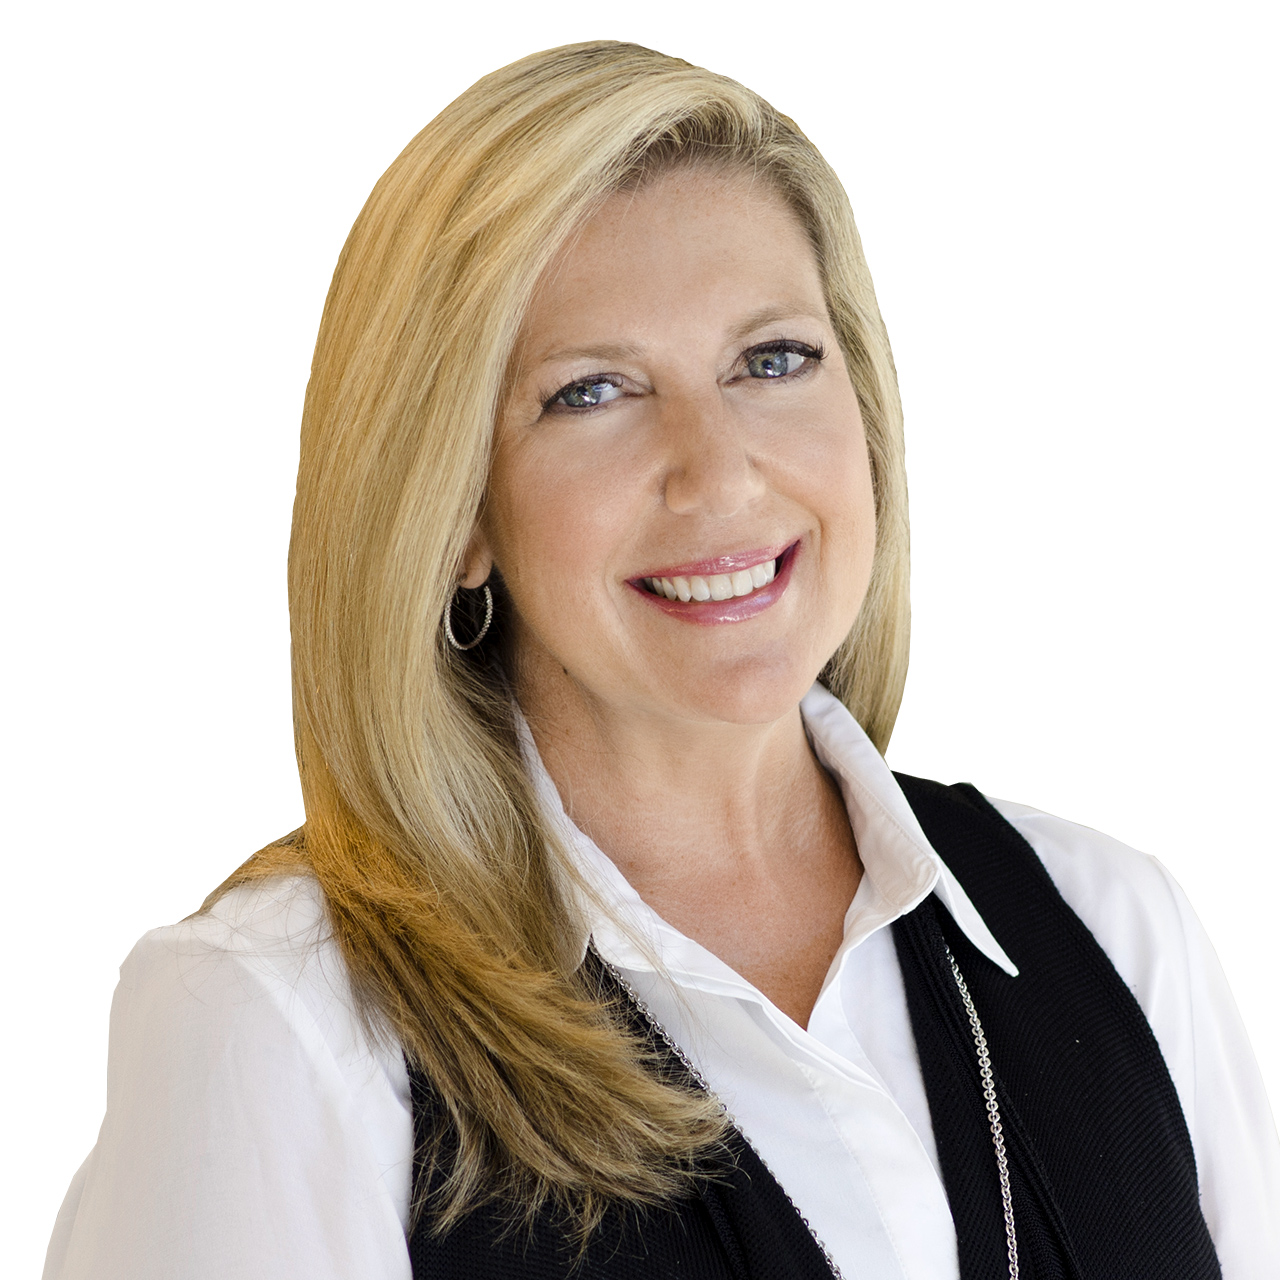 SHANNON BOYLE - CHIEF TALENT OFFICER